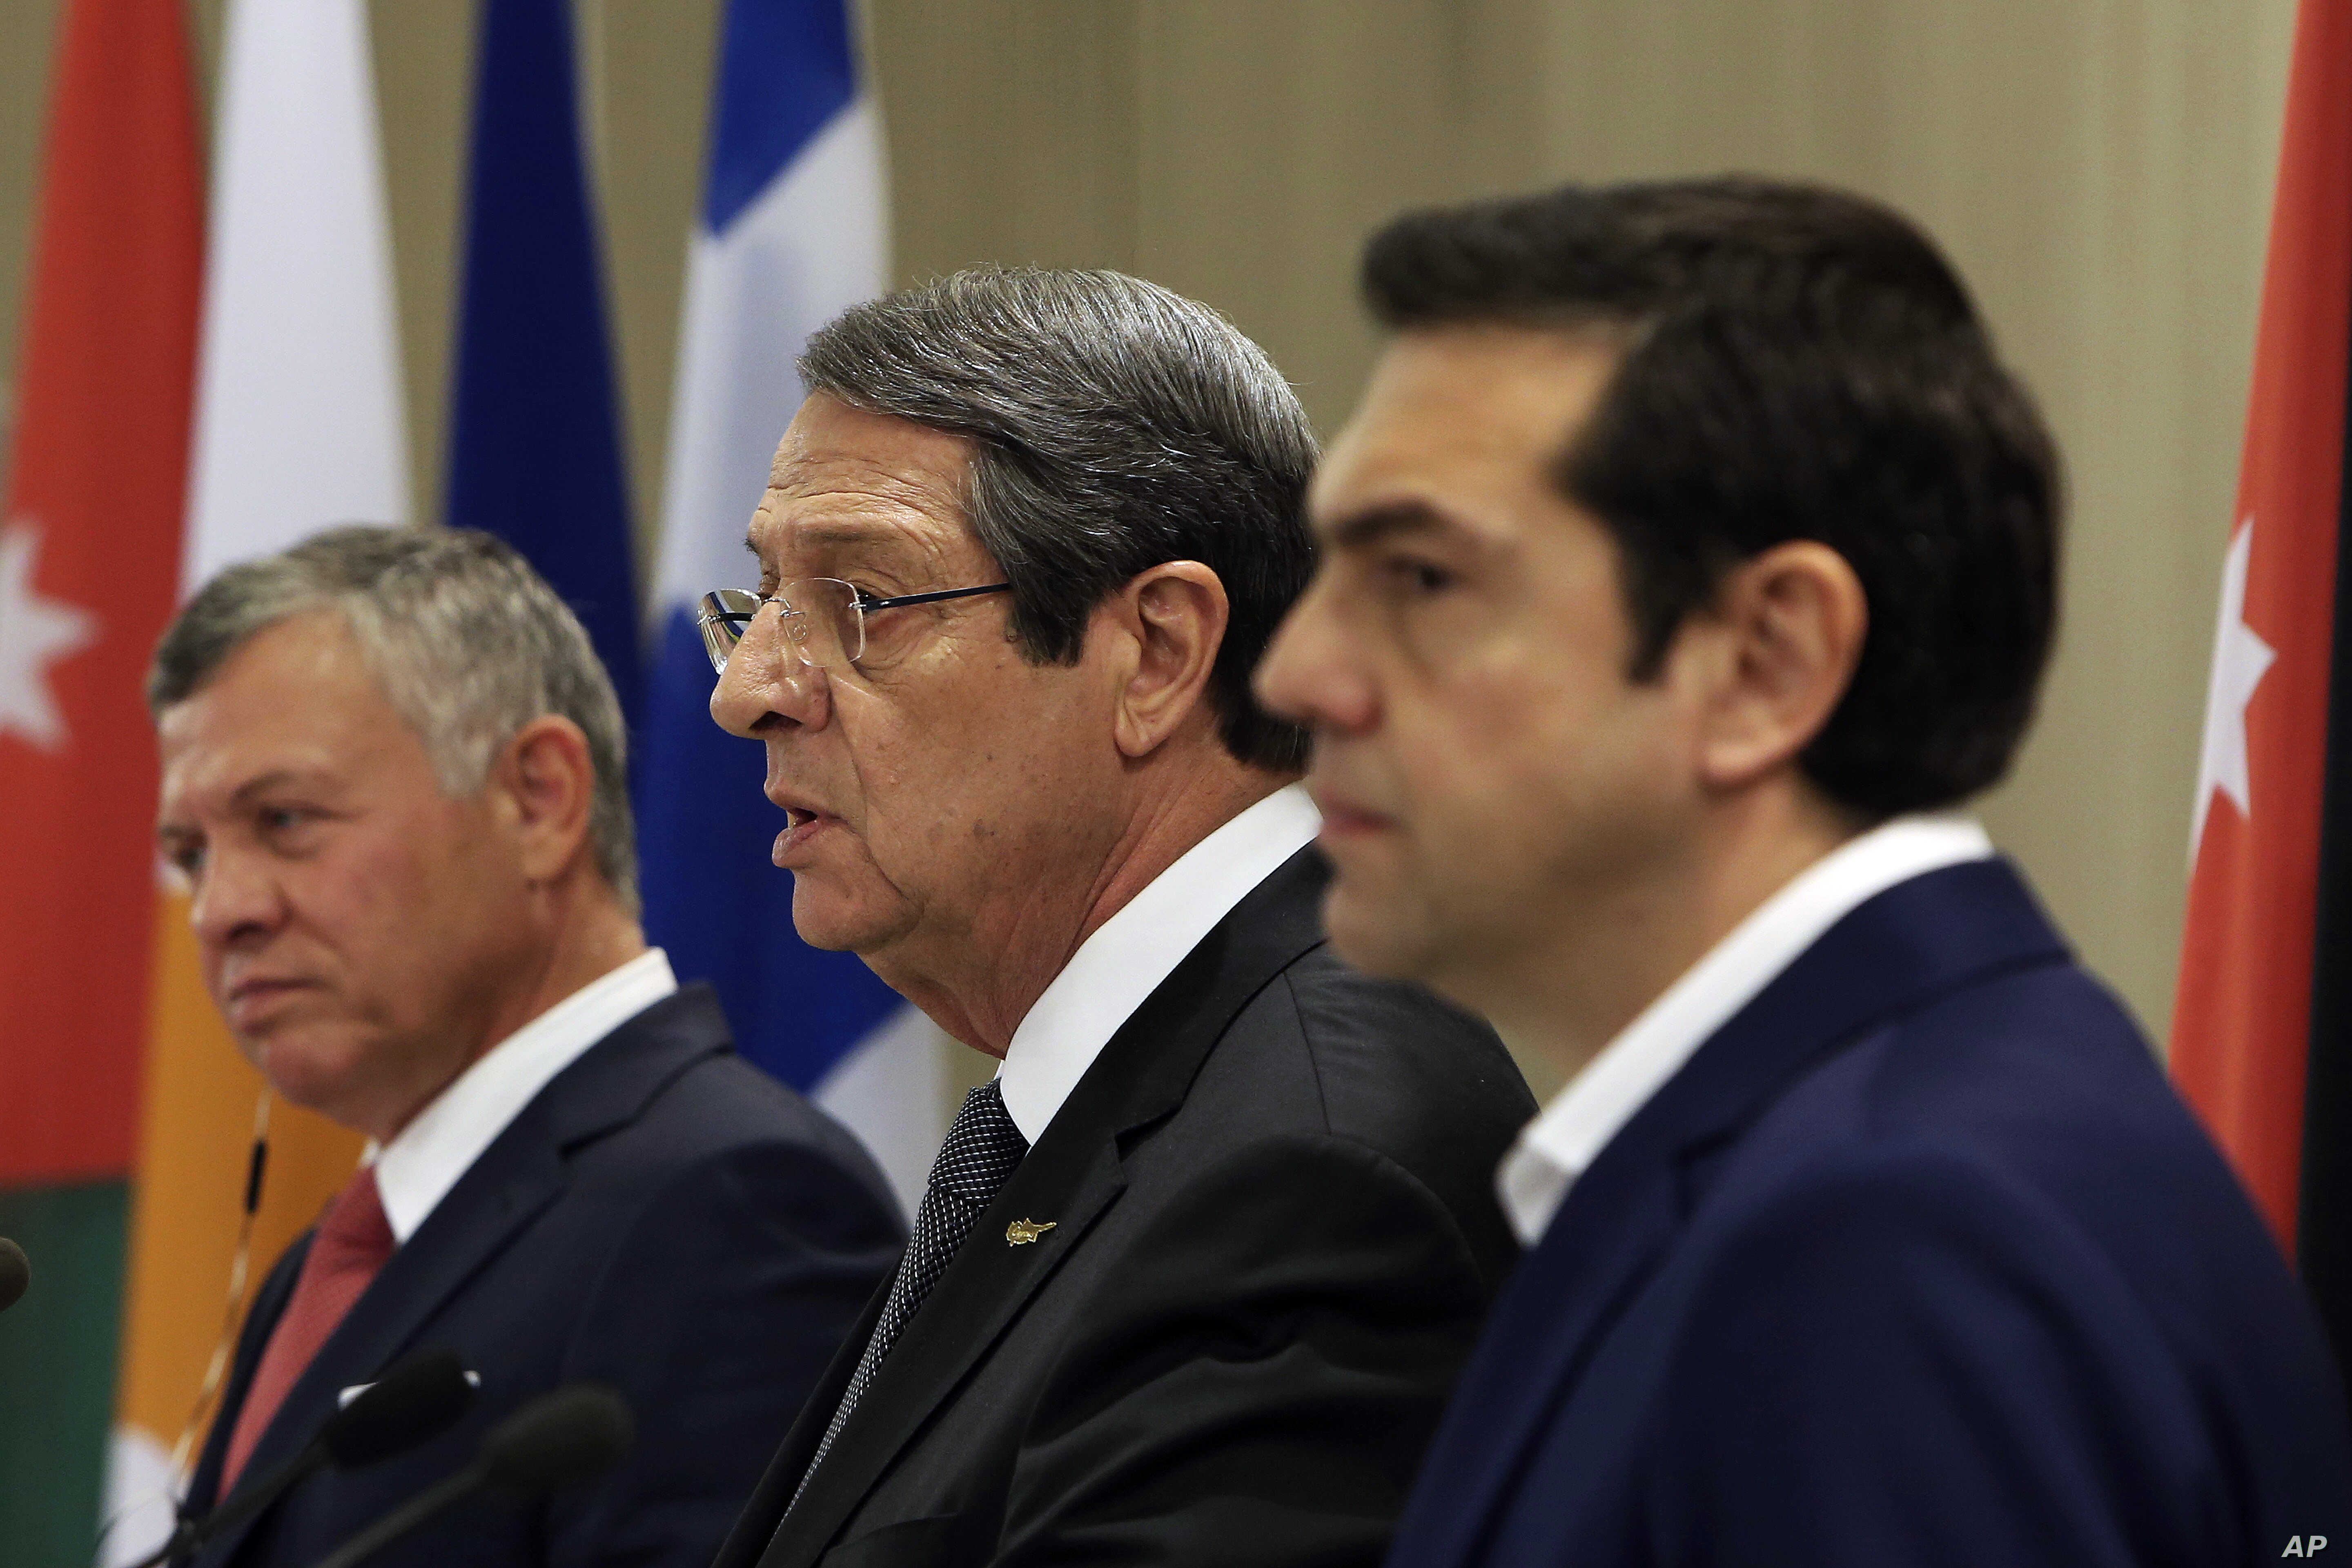 Cyprus, Greece and Jordan Aim to Bolster Region's Security | Voice